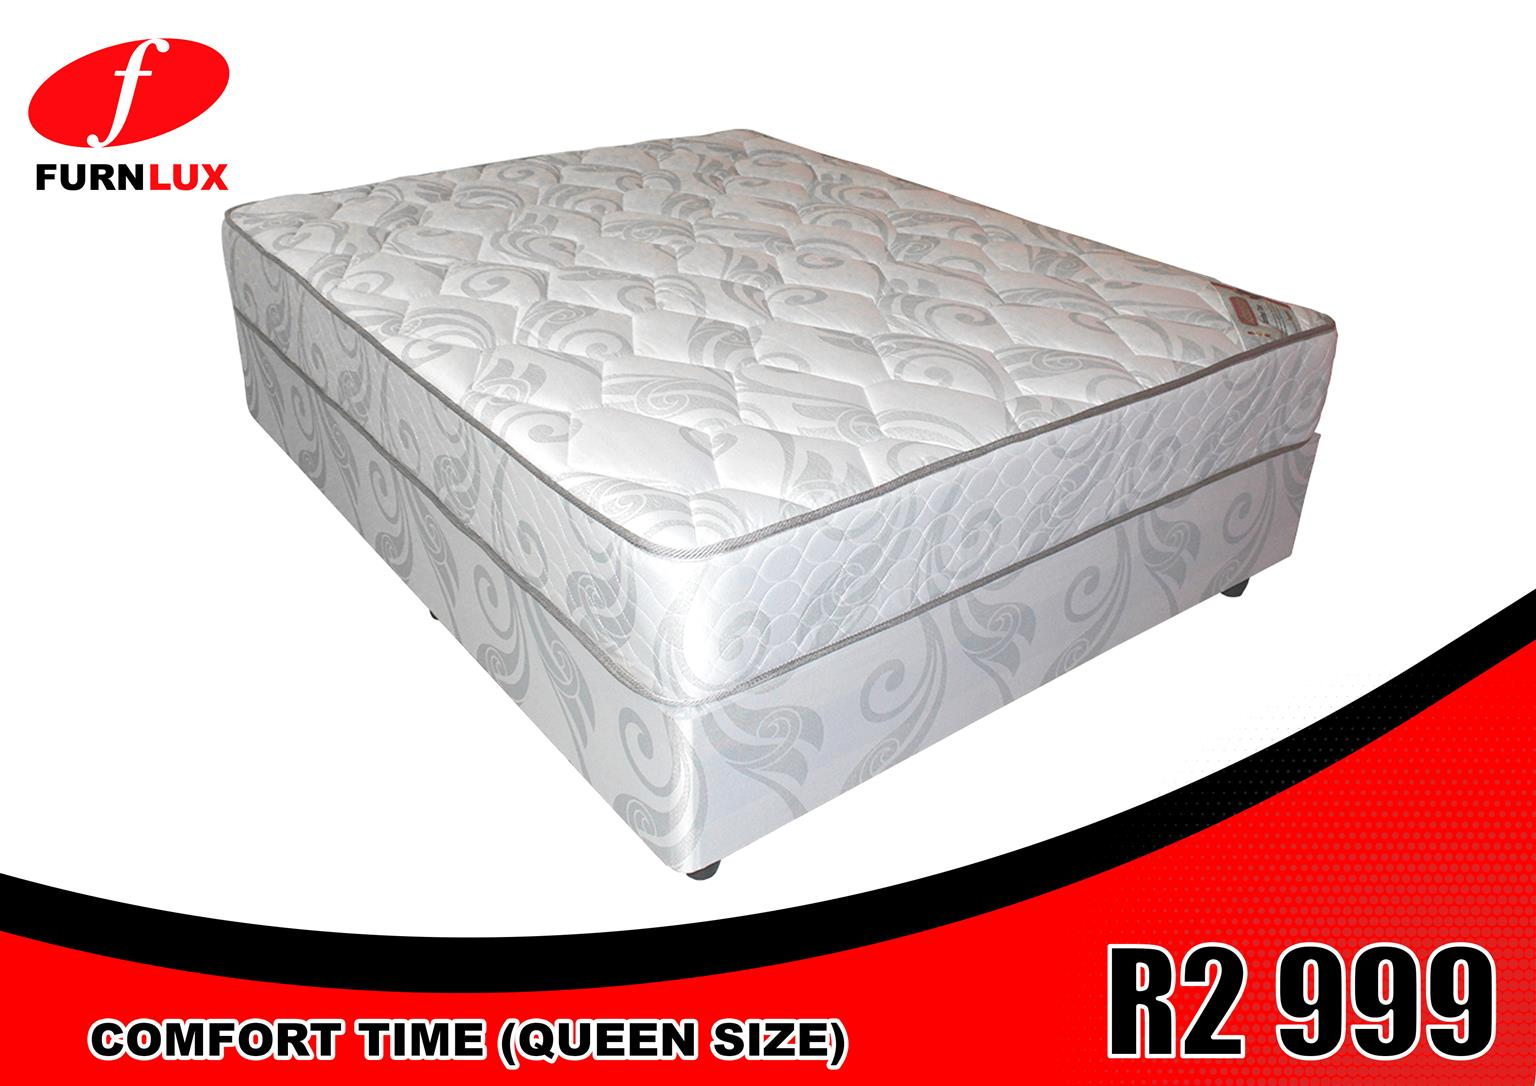 BRAND NEW MATTRESS AND BASE COMFORT TIME BED